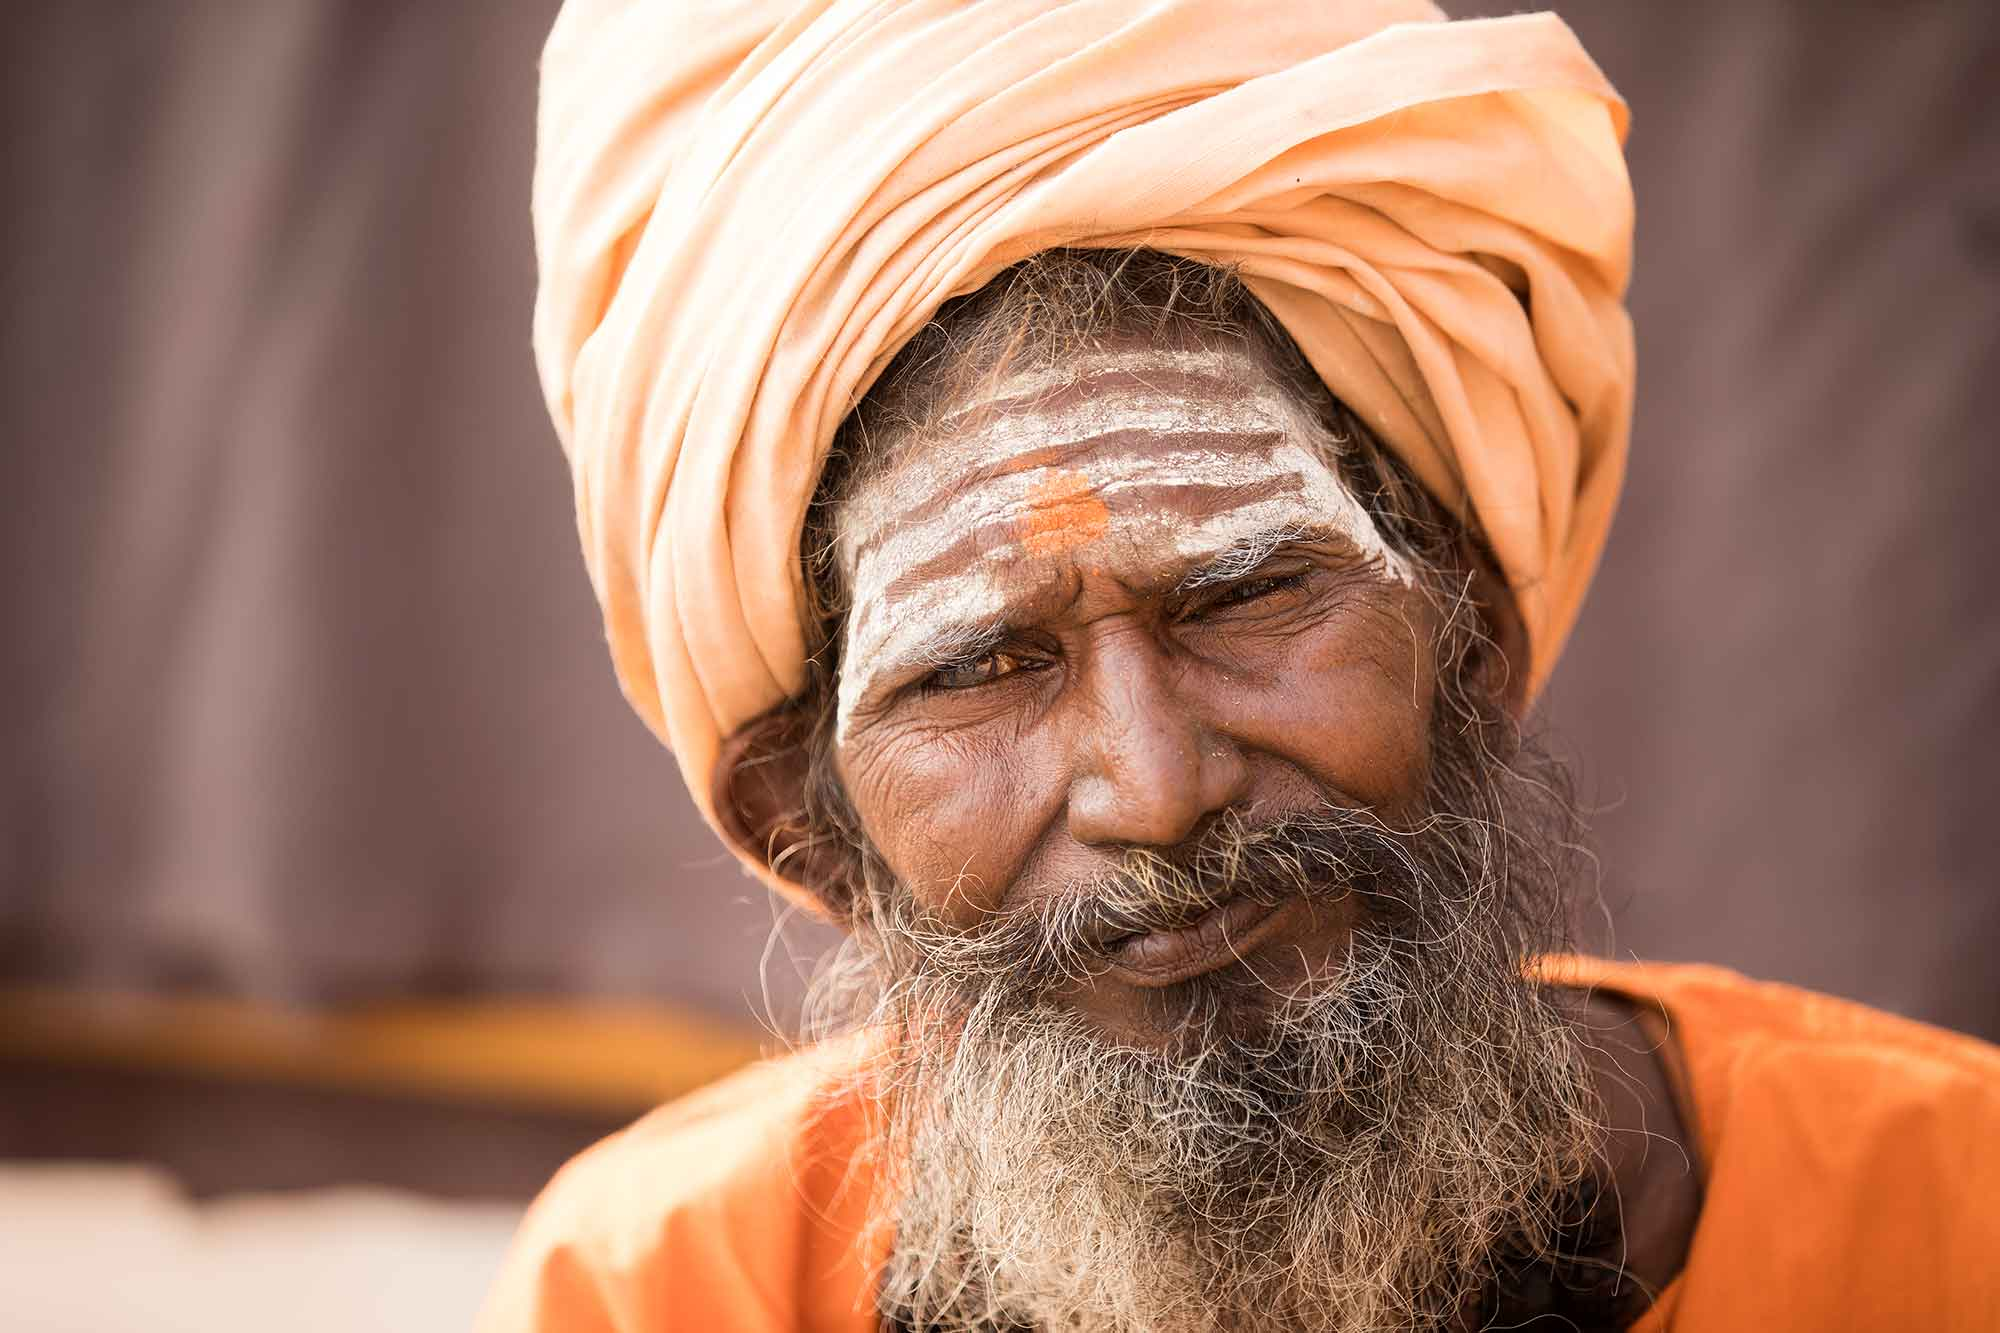 sadhu-portrait-varanasi-india-2